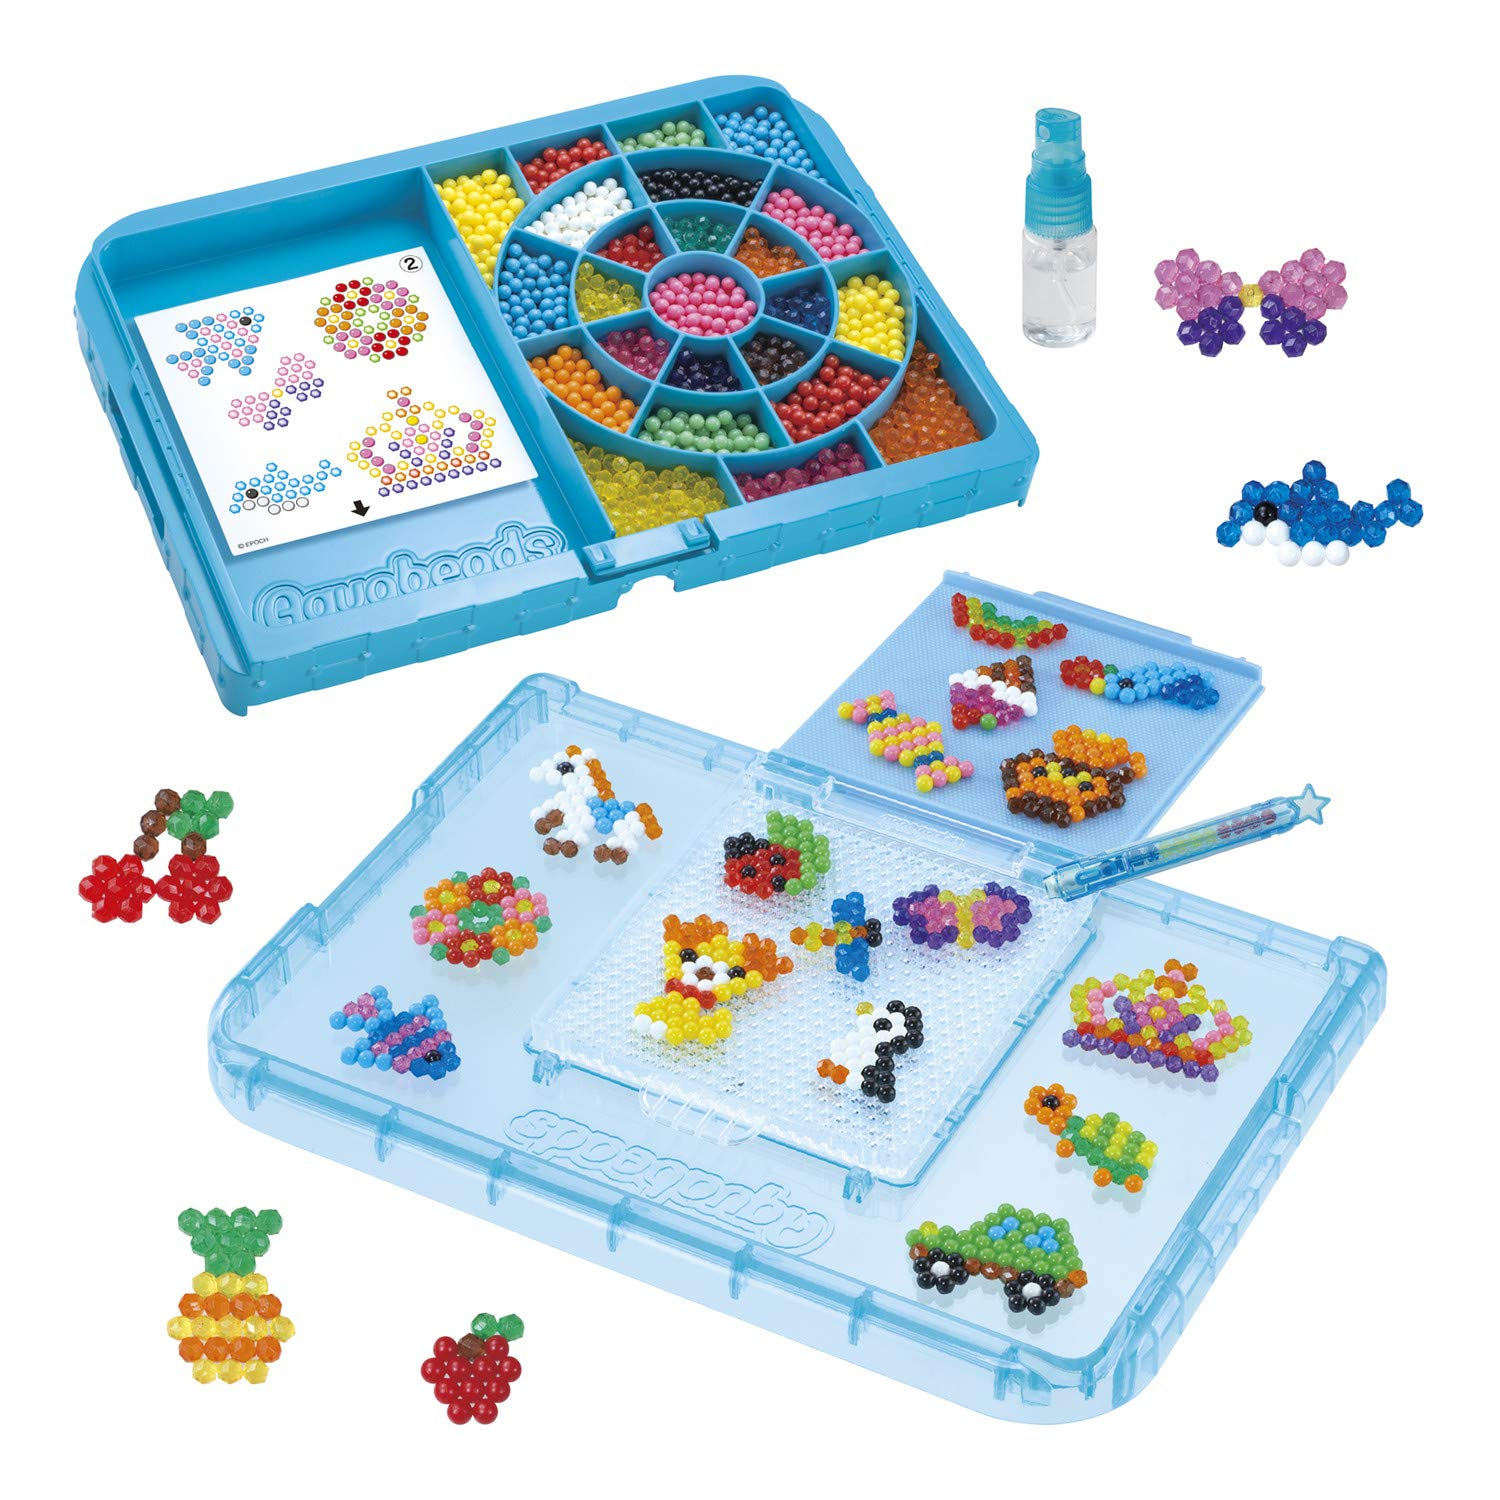 Aquabeads-32788-Beginners-Studio-with-flip-tray-Various